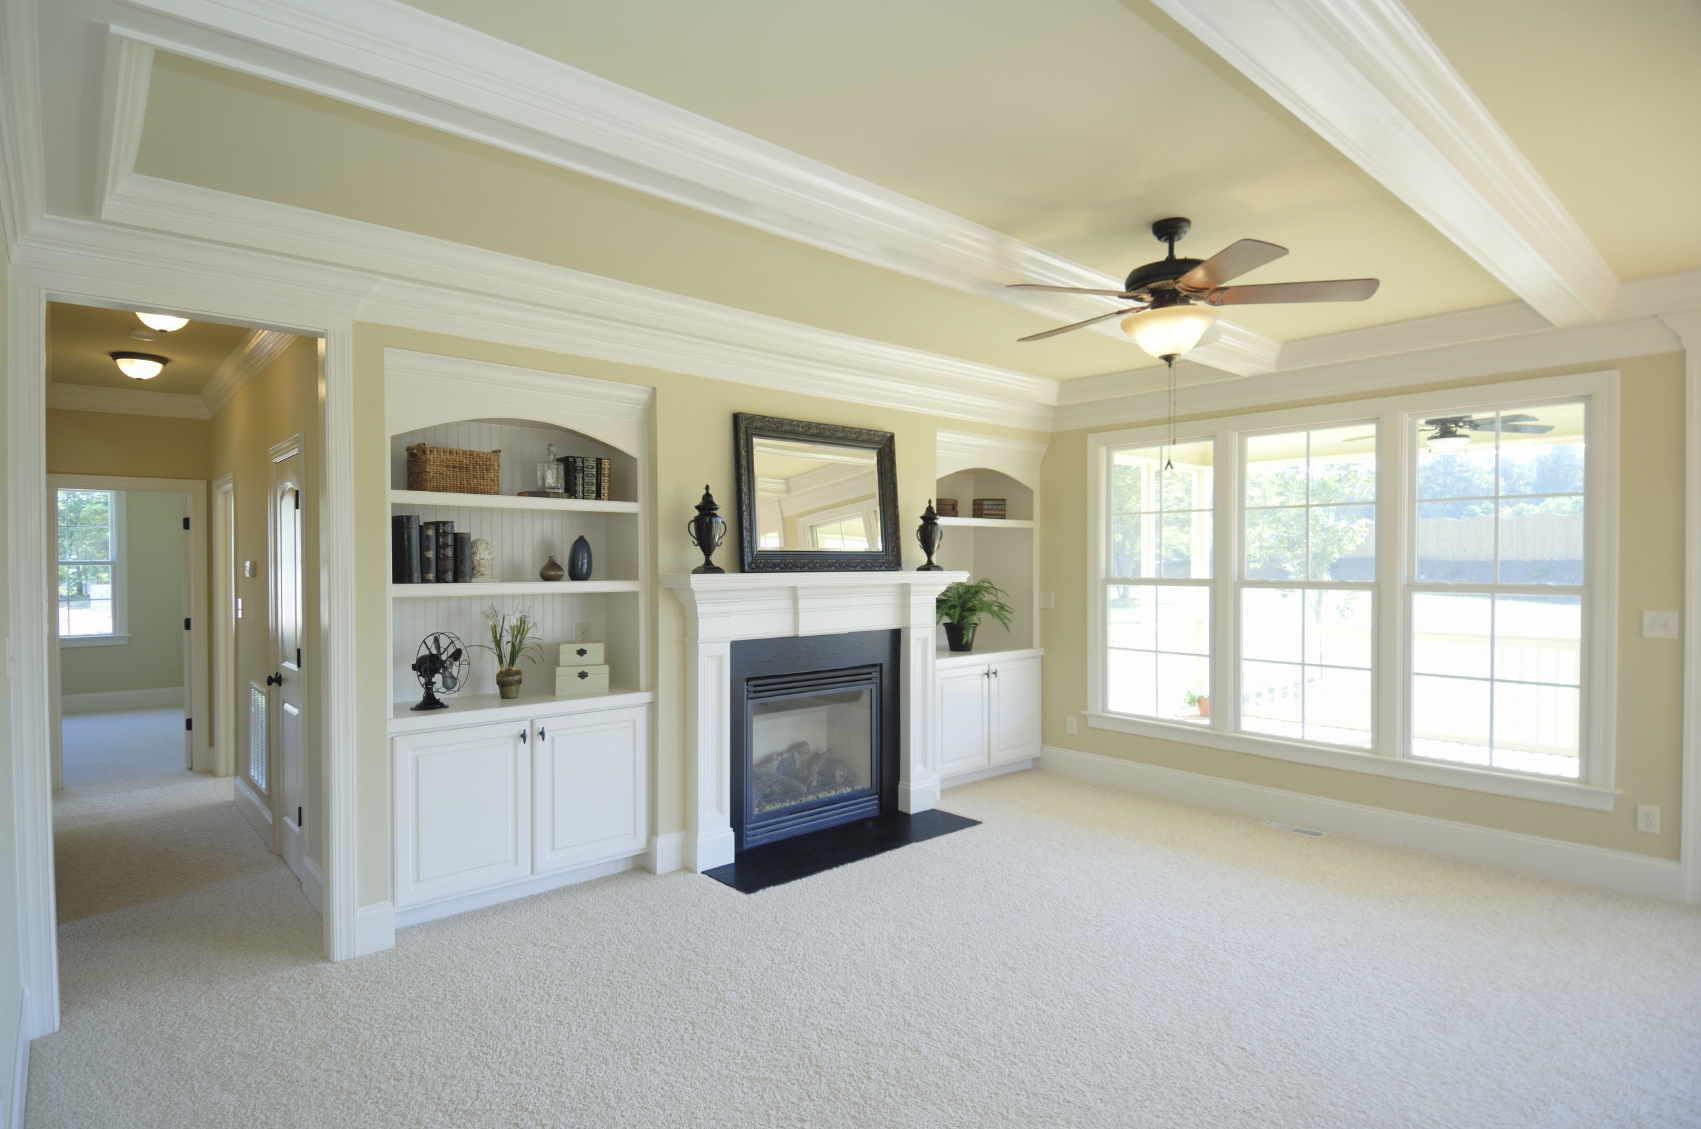 new-paint-inside-fireplace-with-interior